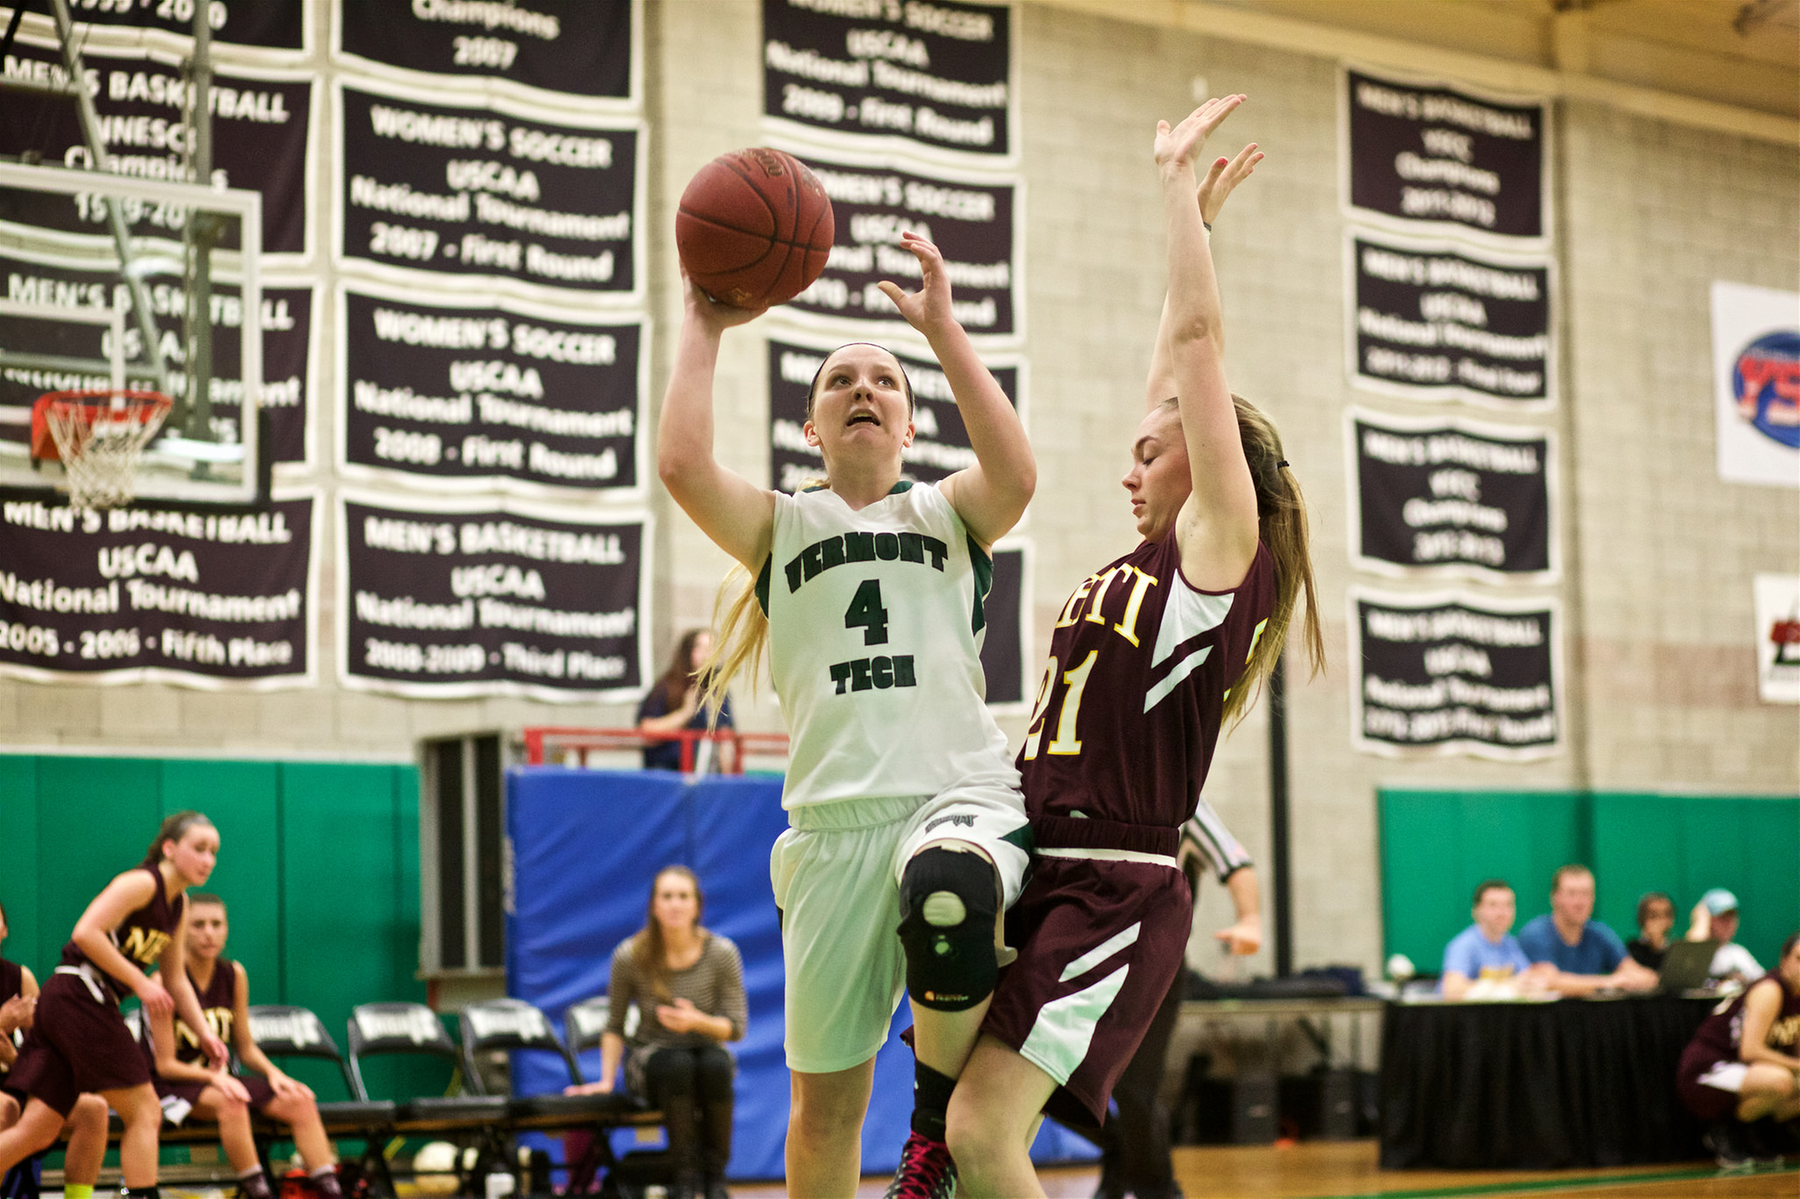 Women's basketball struggles in Maine